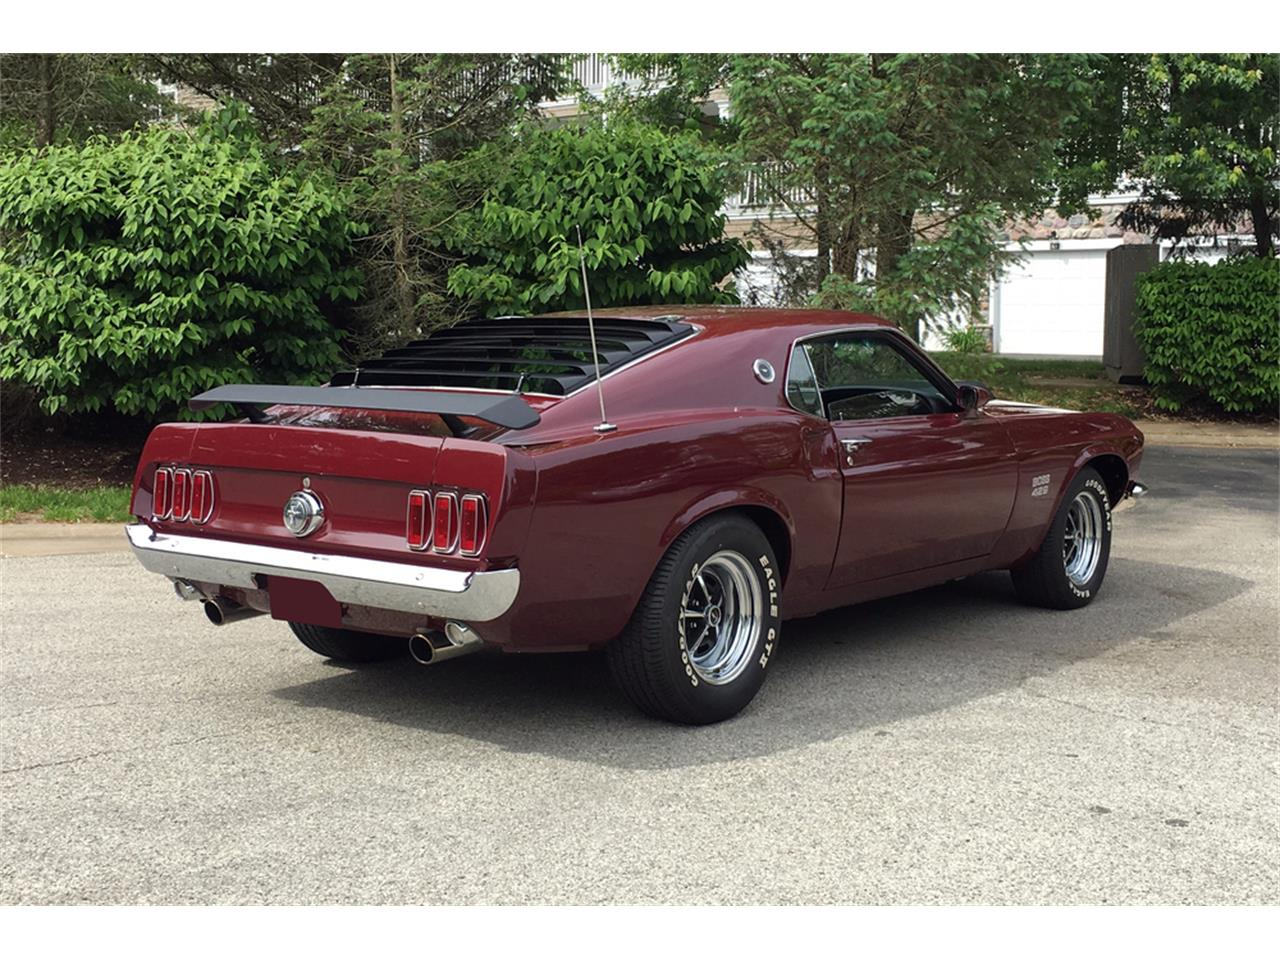 Large Picture of 1969 Ford Mustang located in Uncasville Connecticut Auction Vehicle - Q7J6